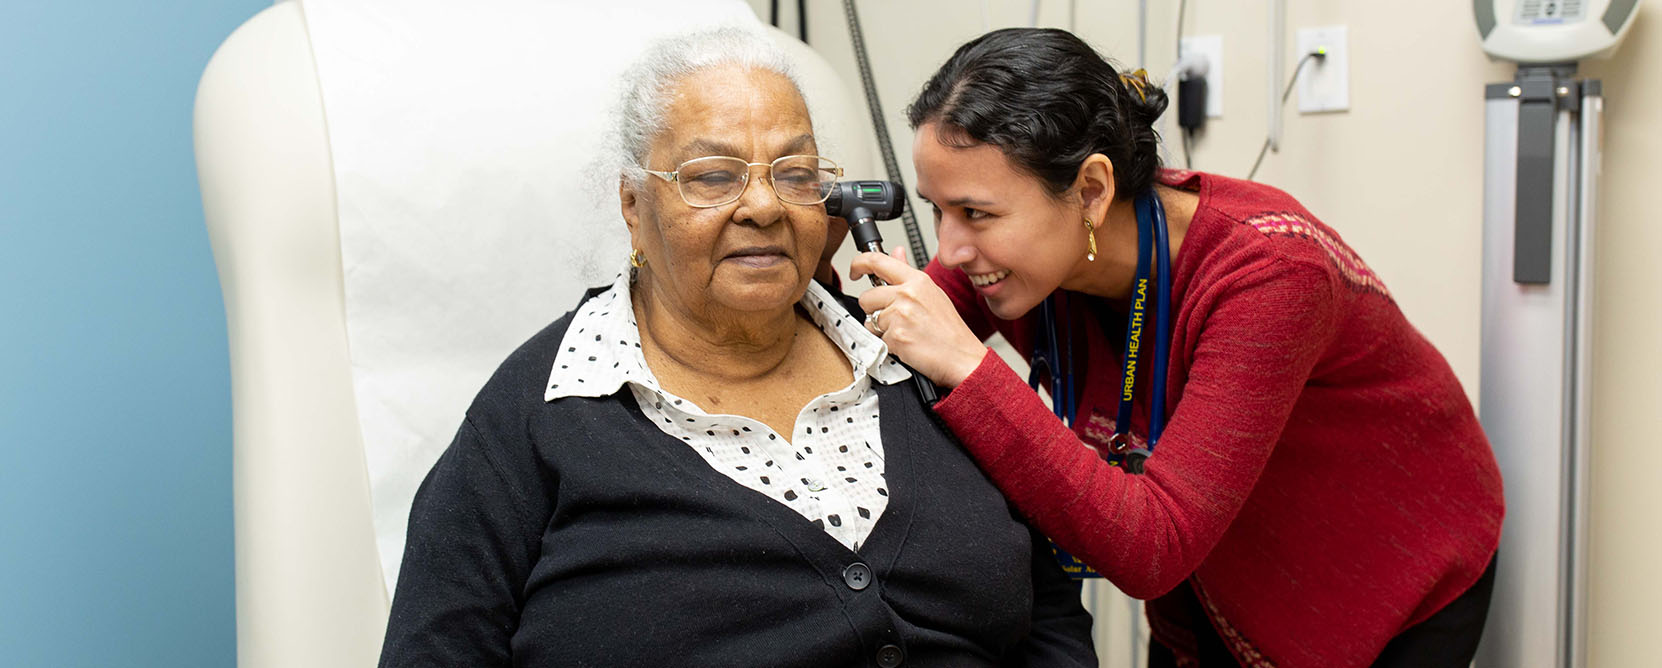 Older adult patient has her ears examined